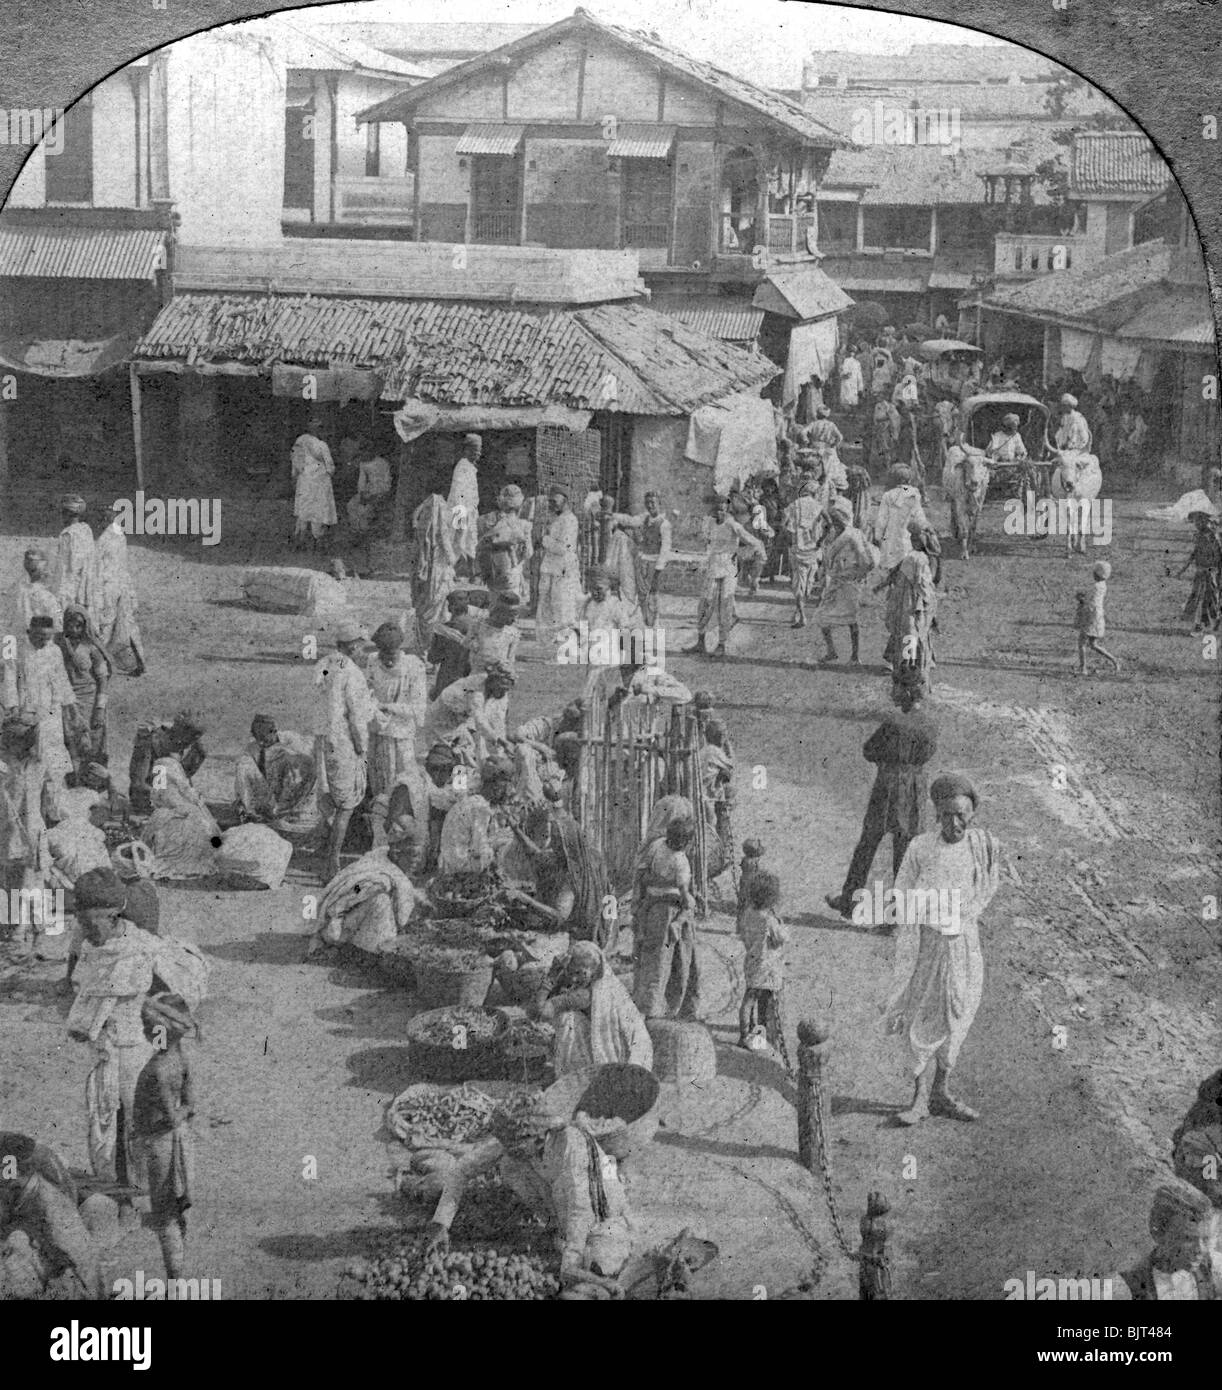 A market in Ahmedabad, India, 1902. Stereoscopic slide. Detail. - Stock Image